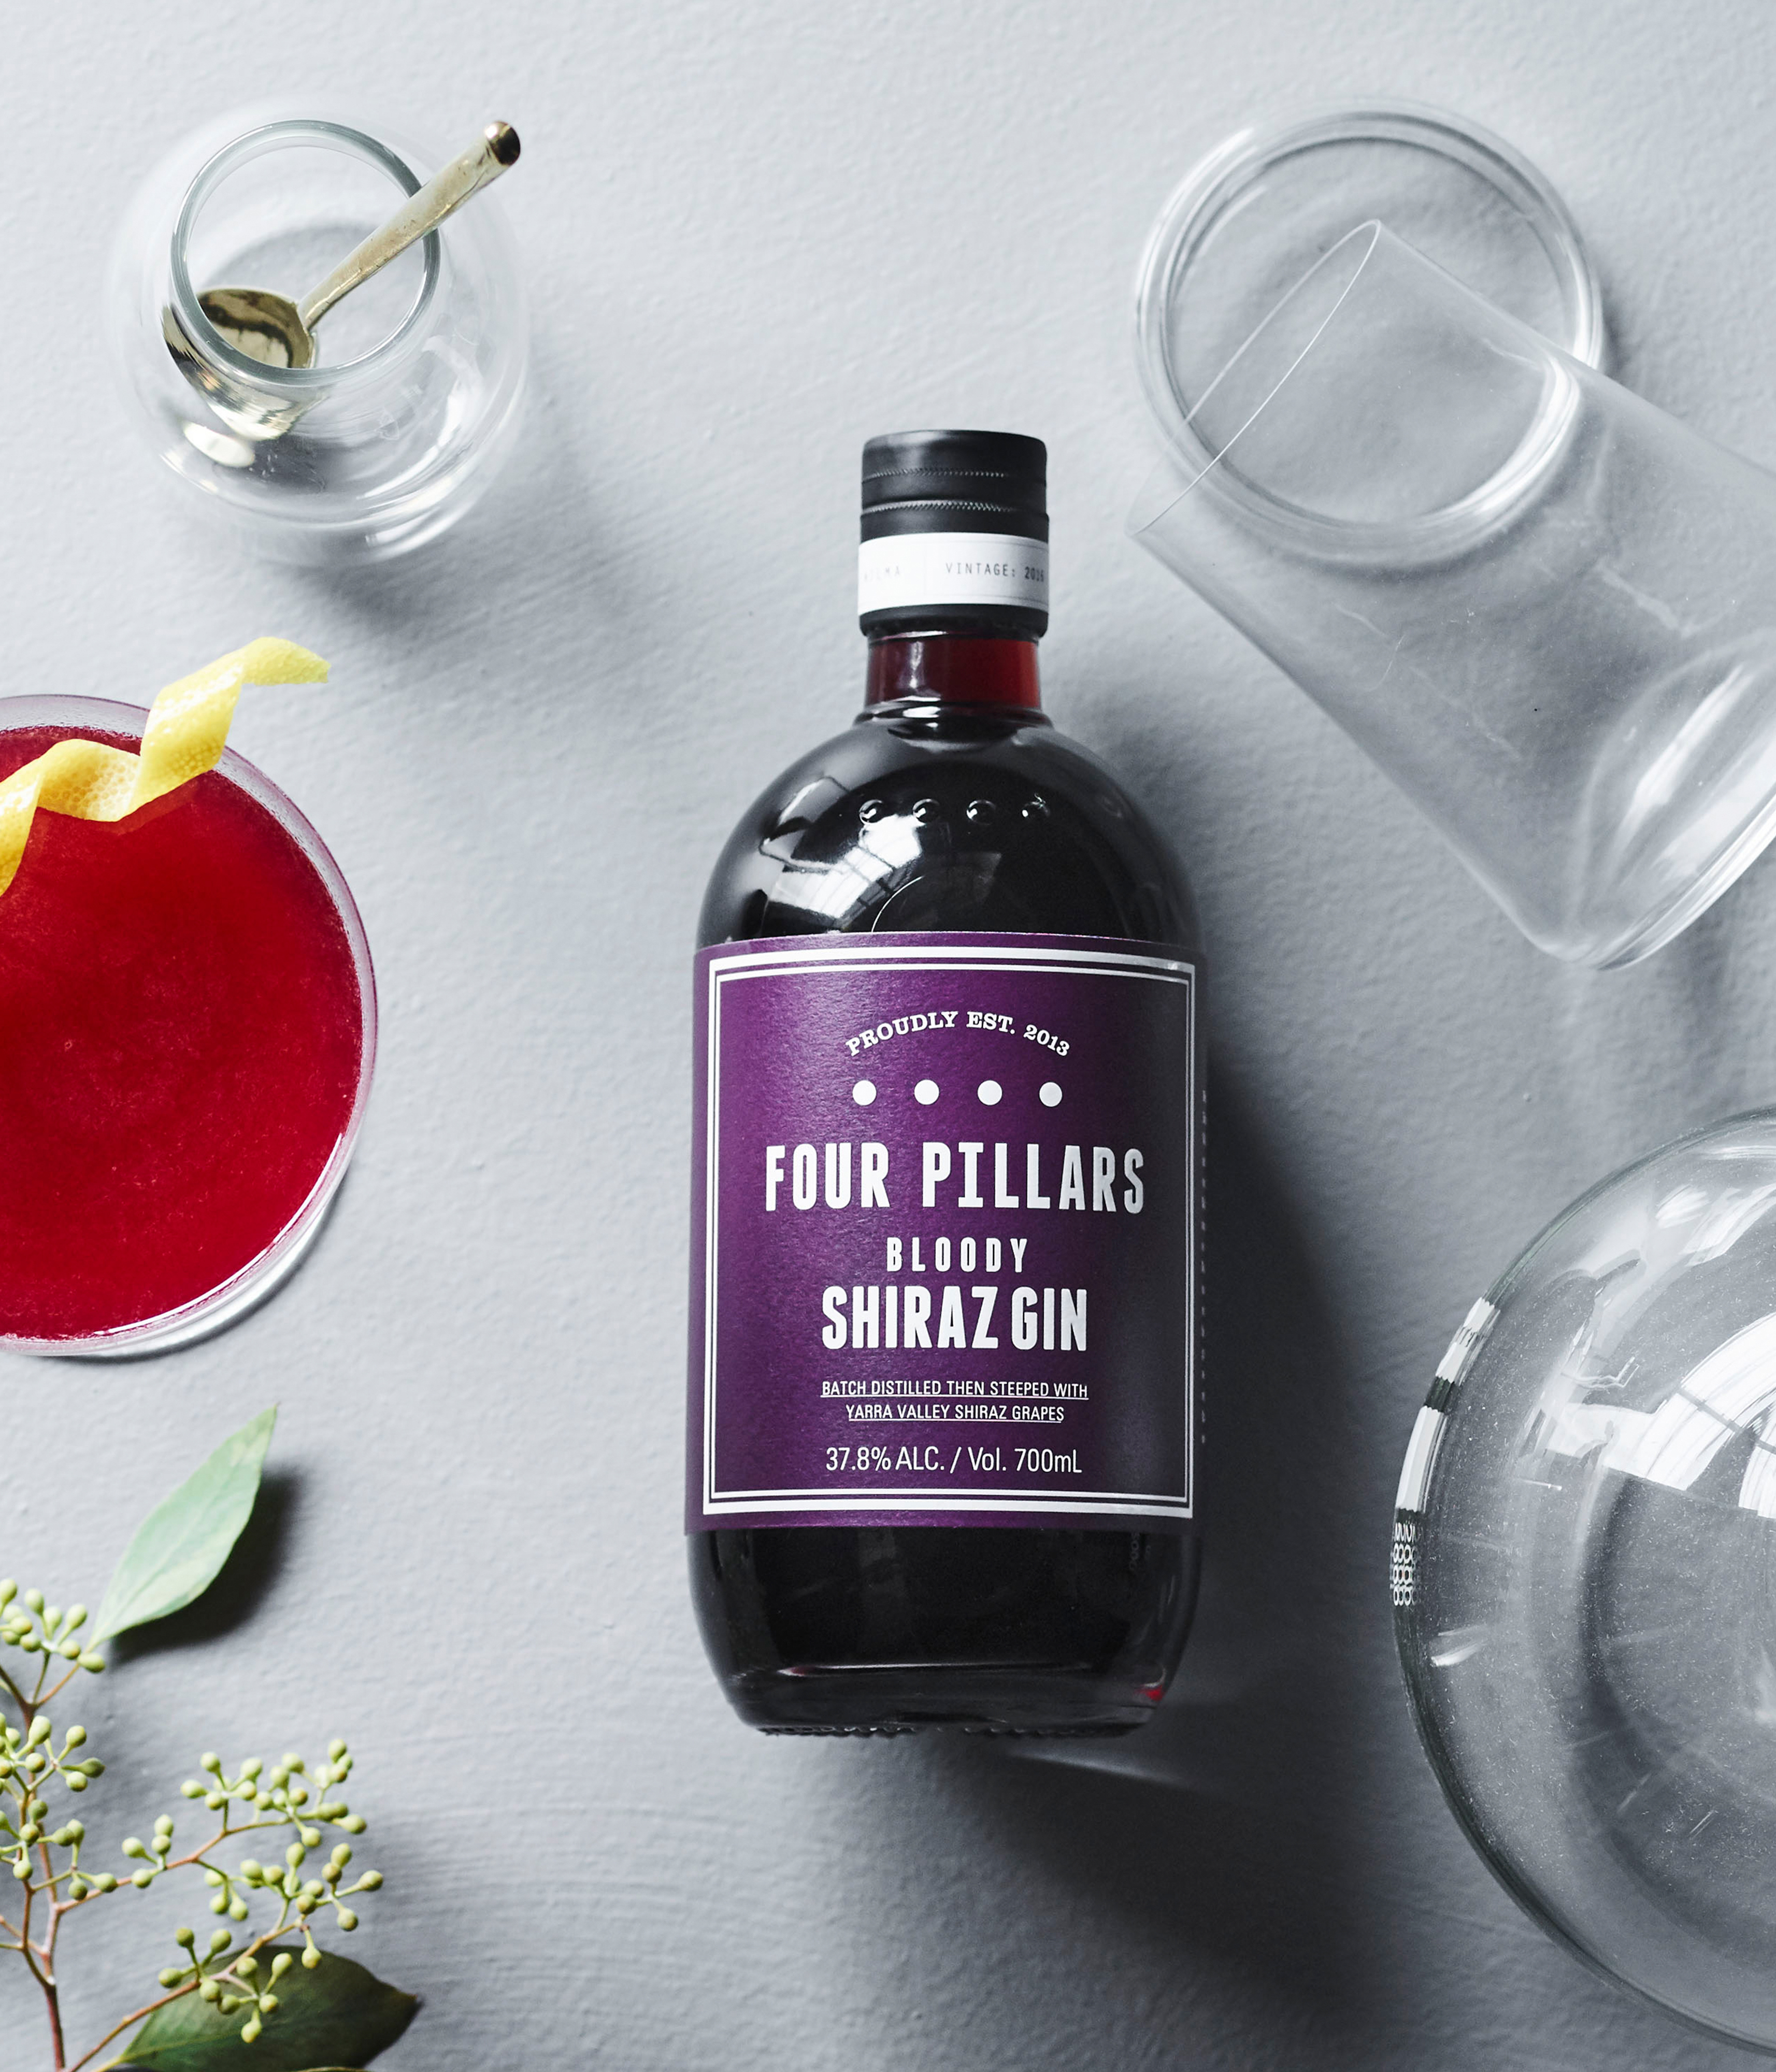 Bloody Shiraz Gin is back with a 2017 vintage